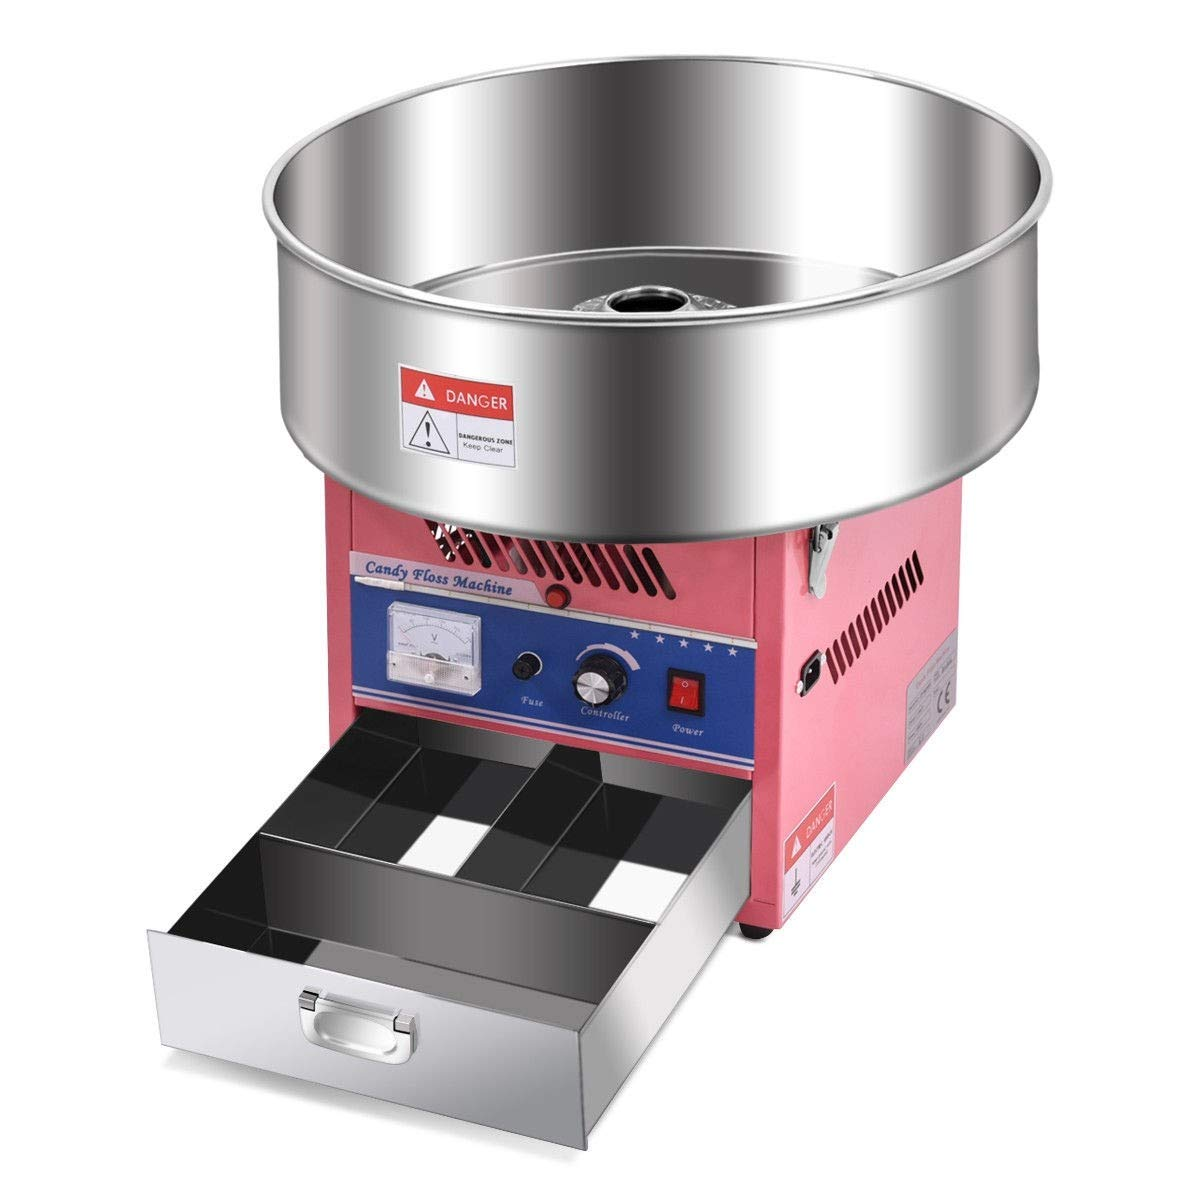 Cotton Candy Machine, Pink Electric Cotton Candy Machine by MD Group (Image #5)